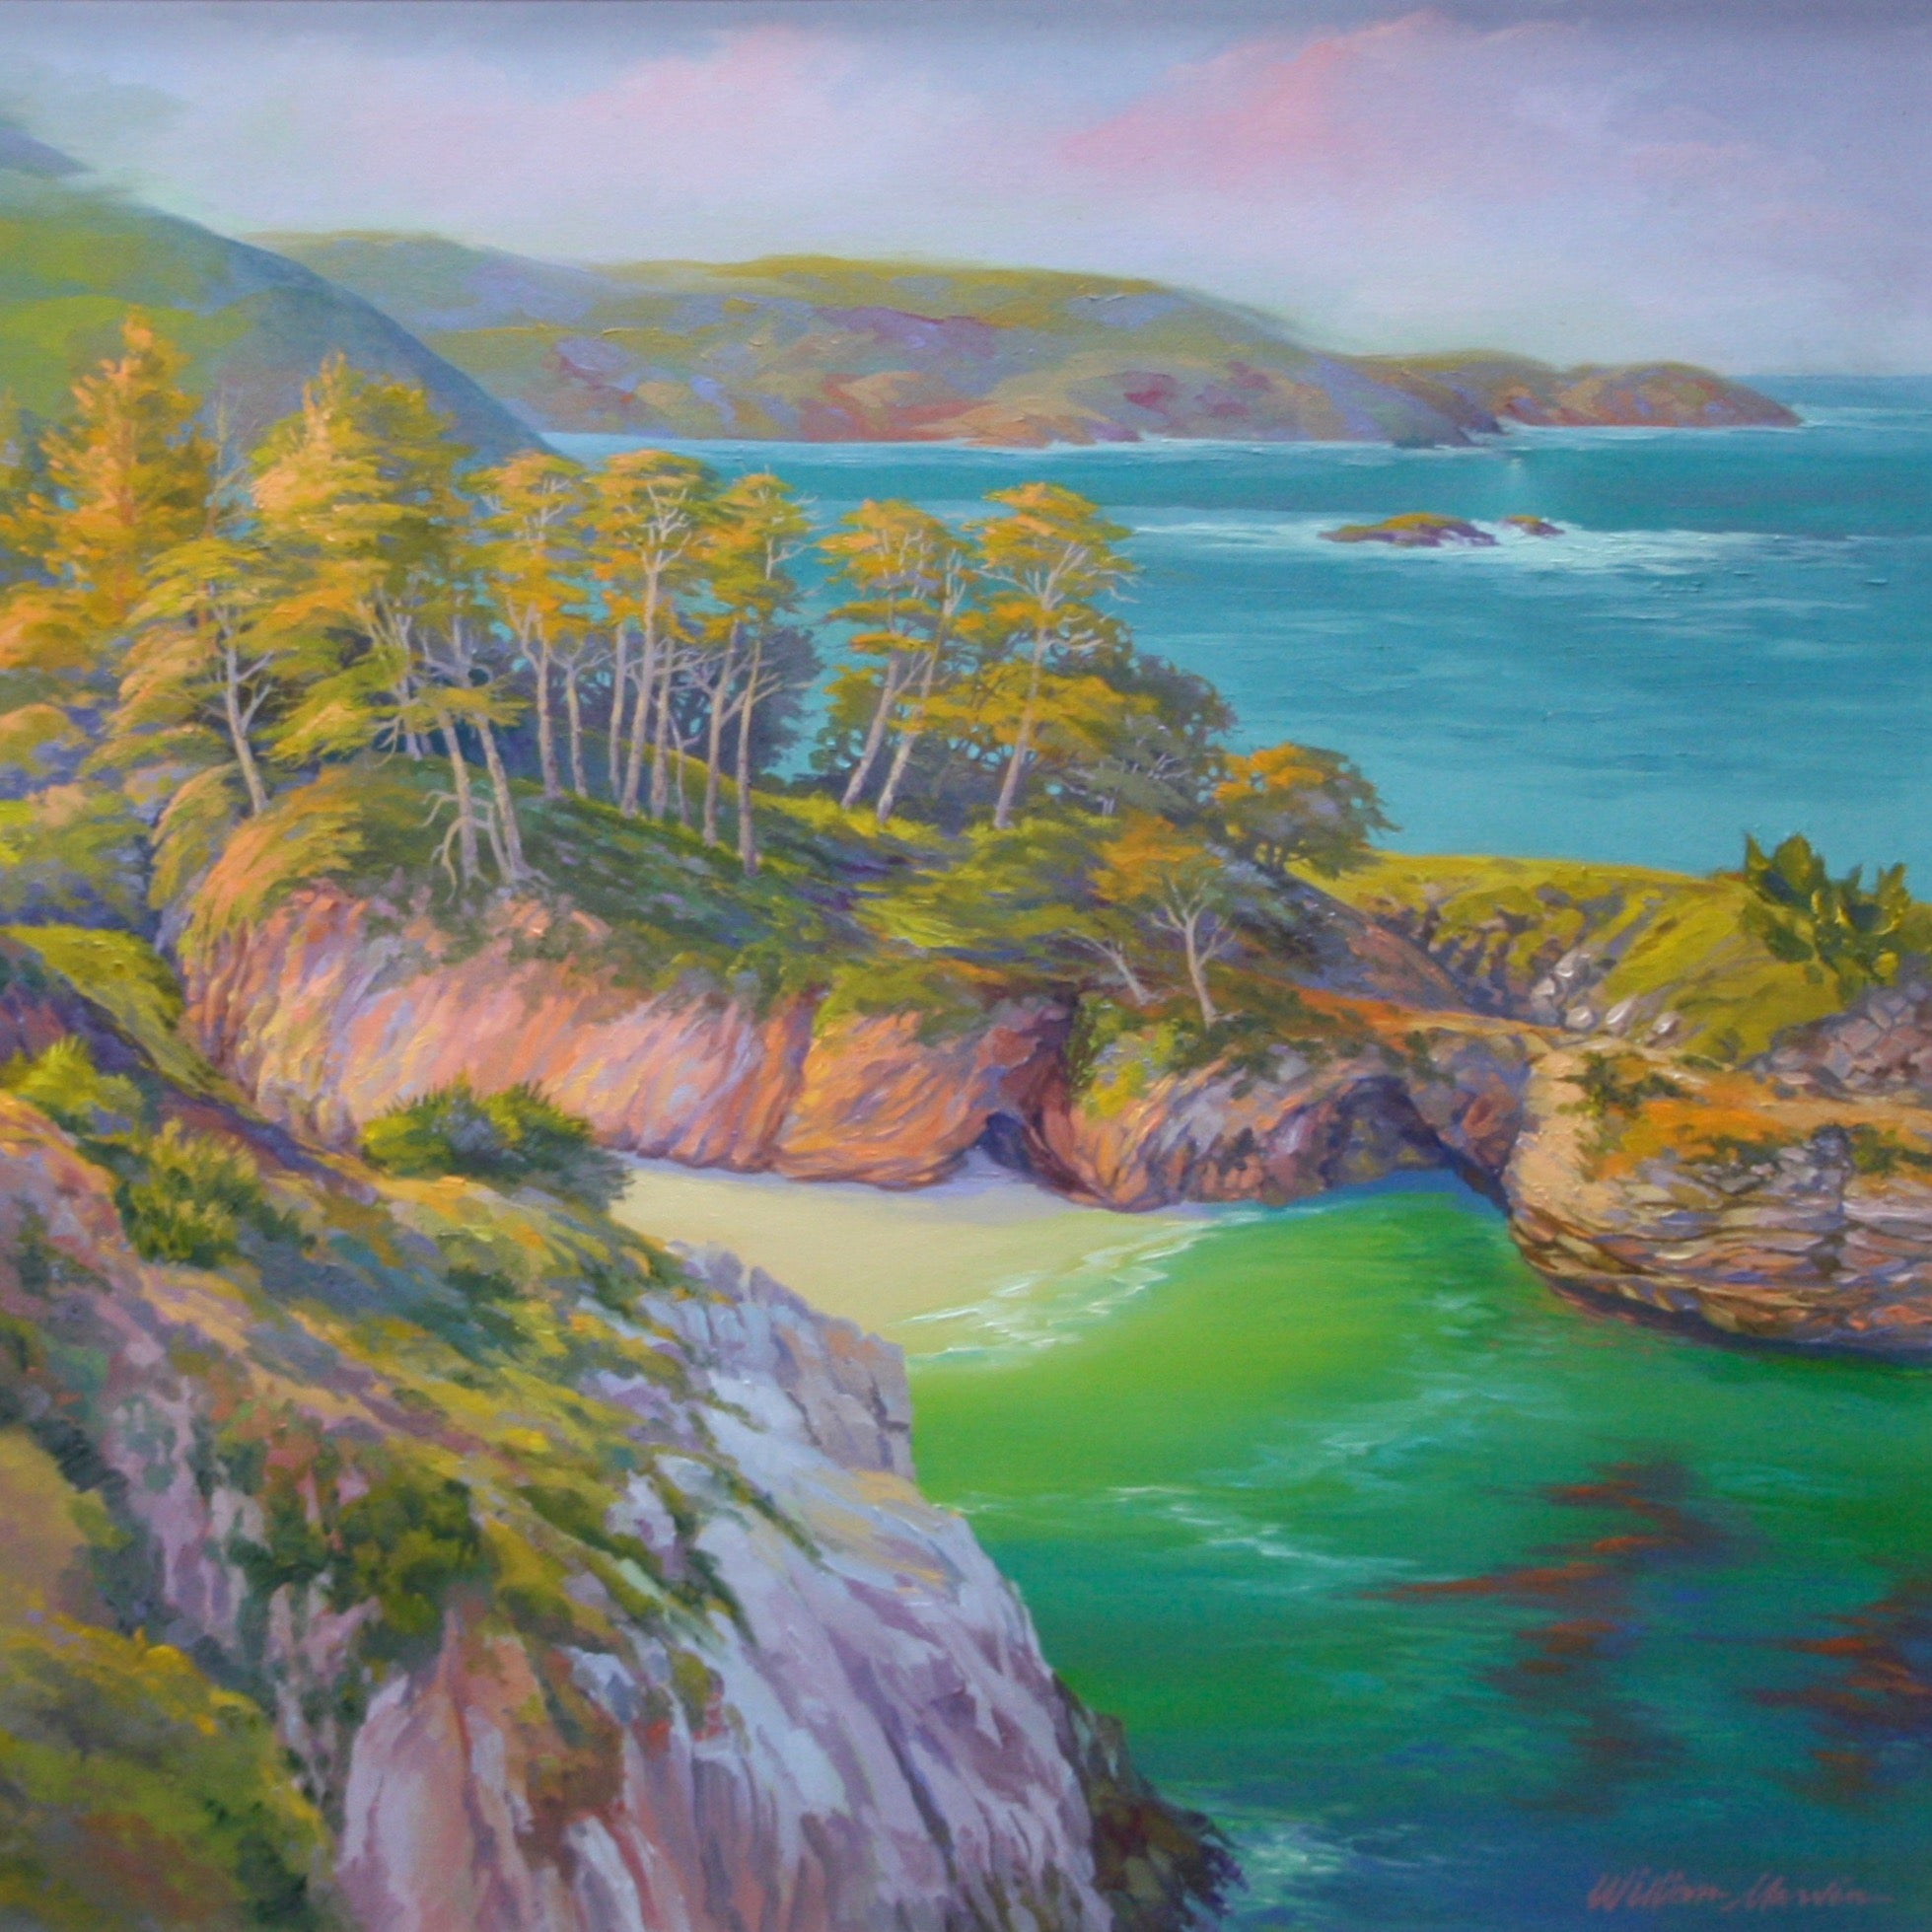 """Morning at China Cove"" by William Marvin 